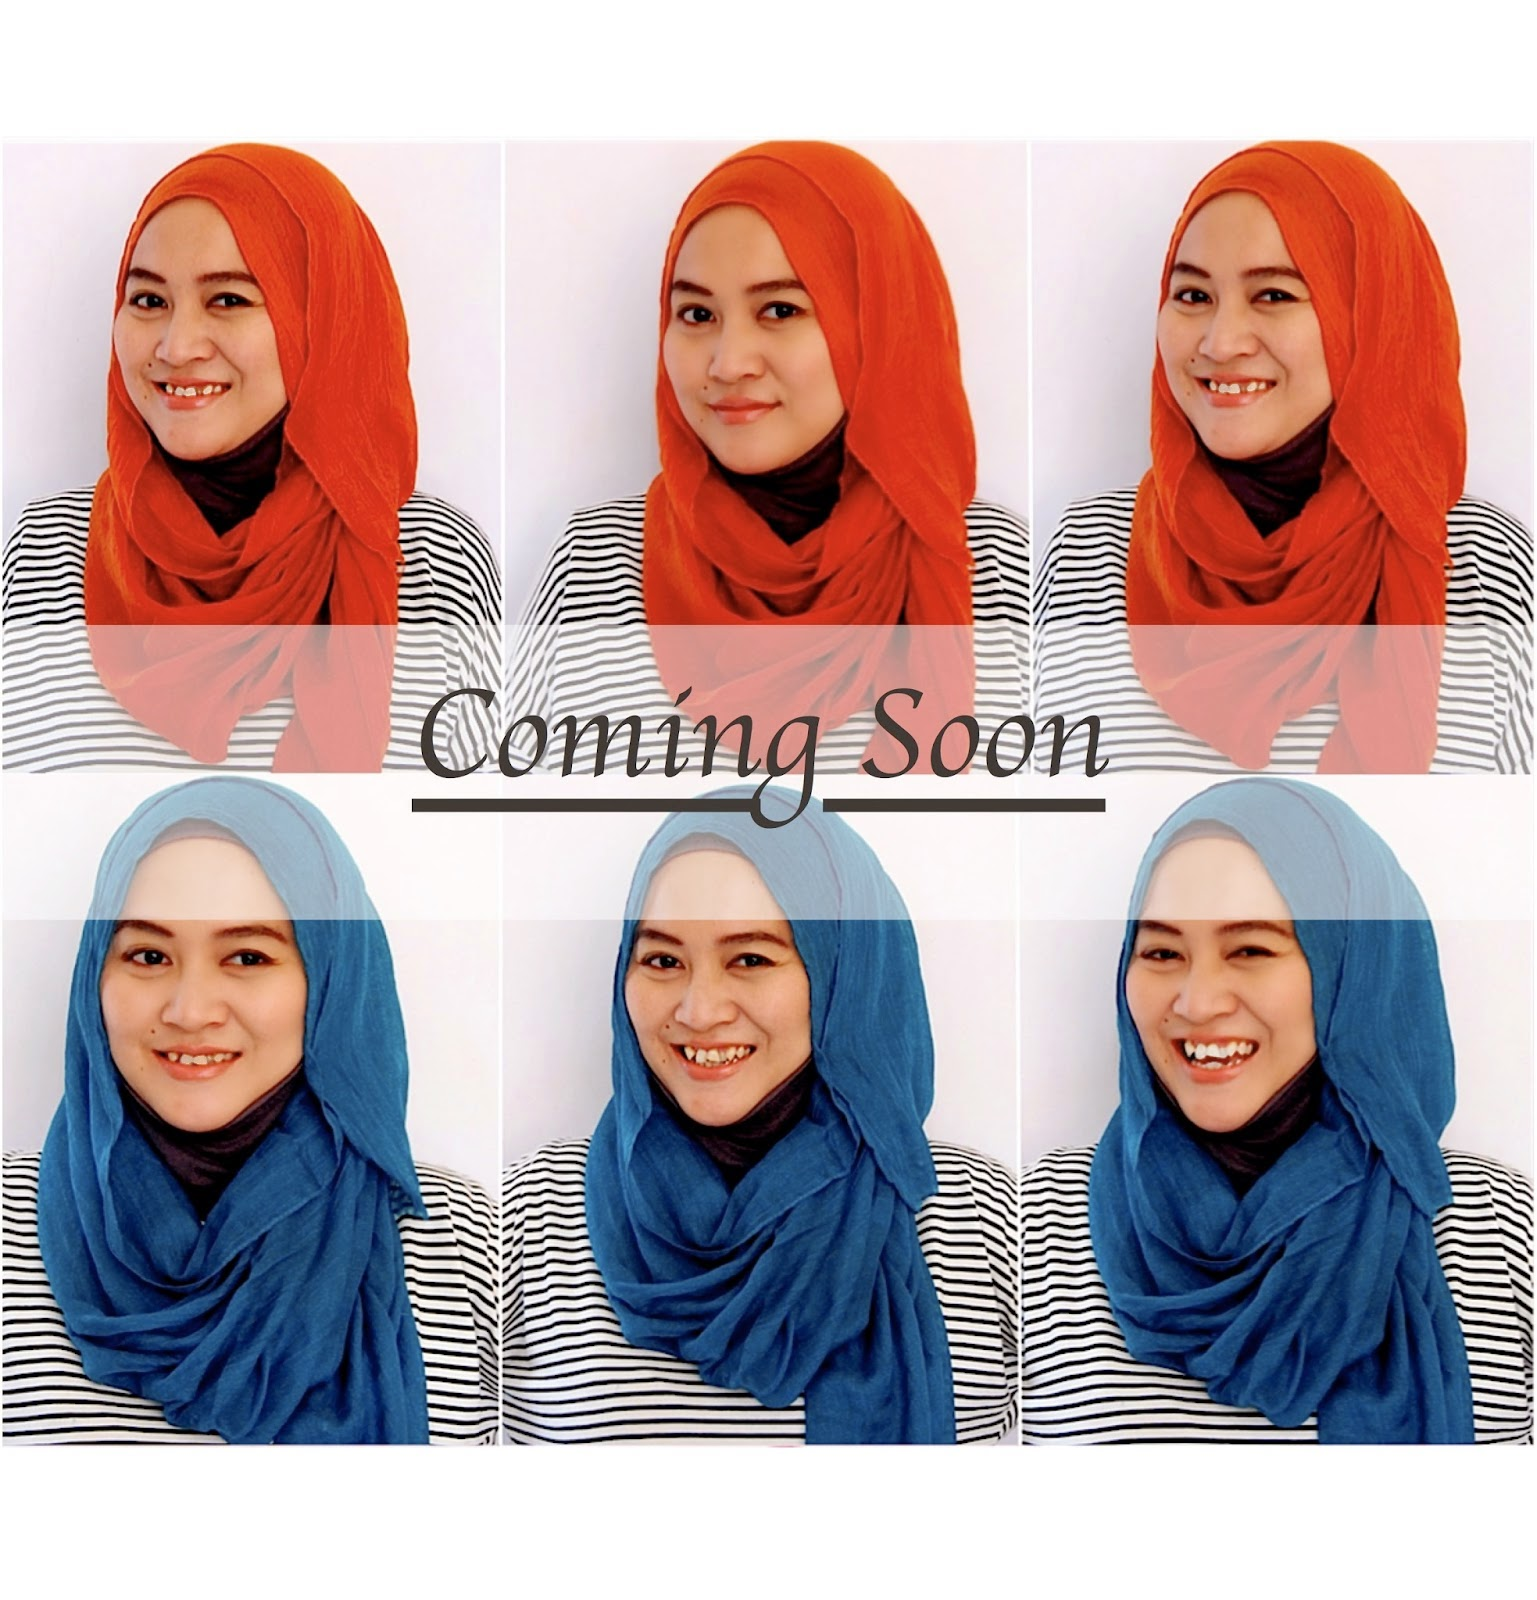 Wwwmiafauziacom Housewifing With Style Hijab Tutorial By